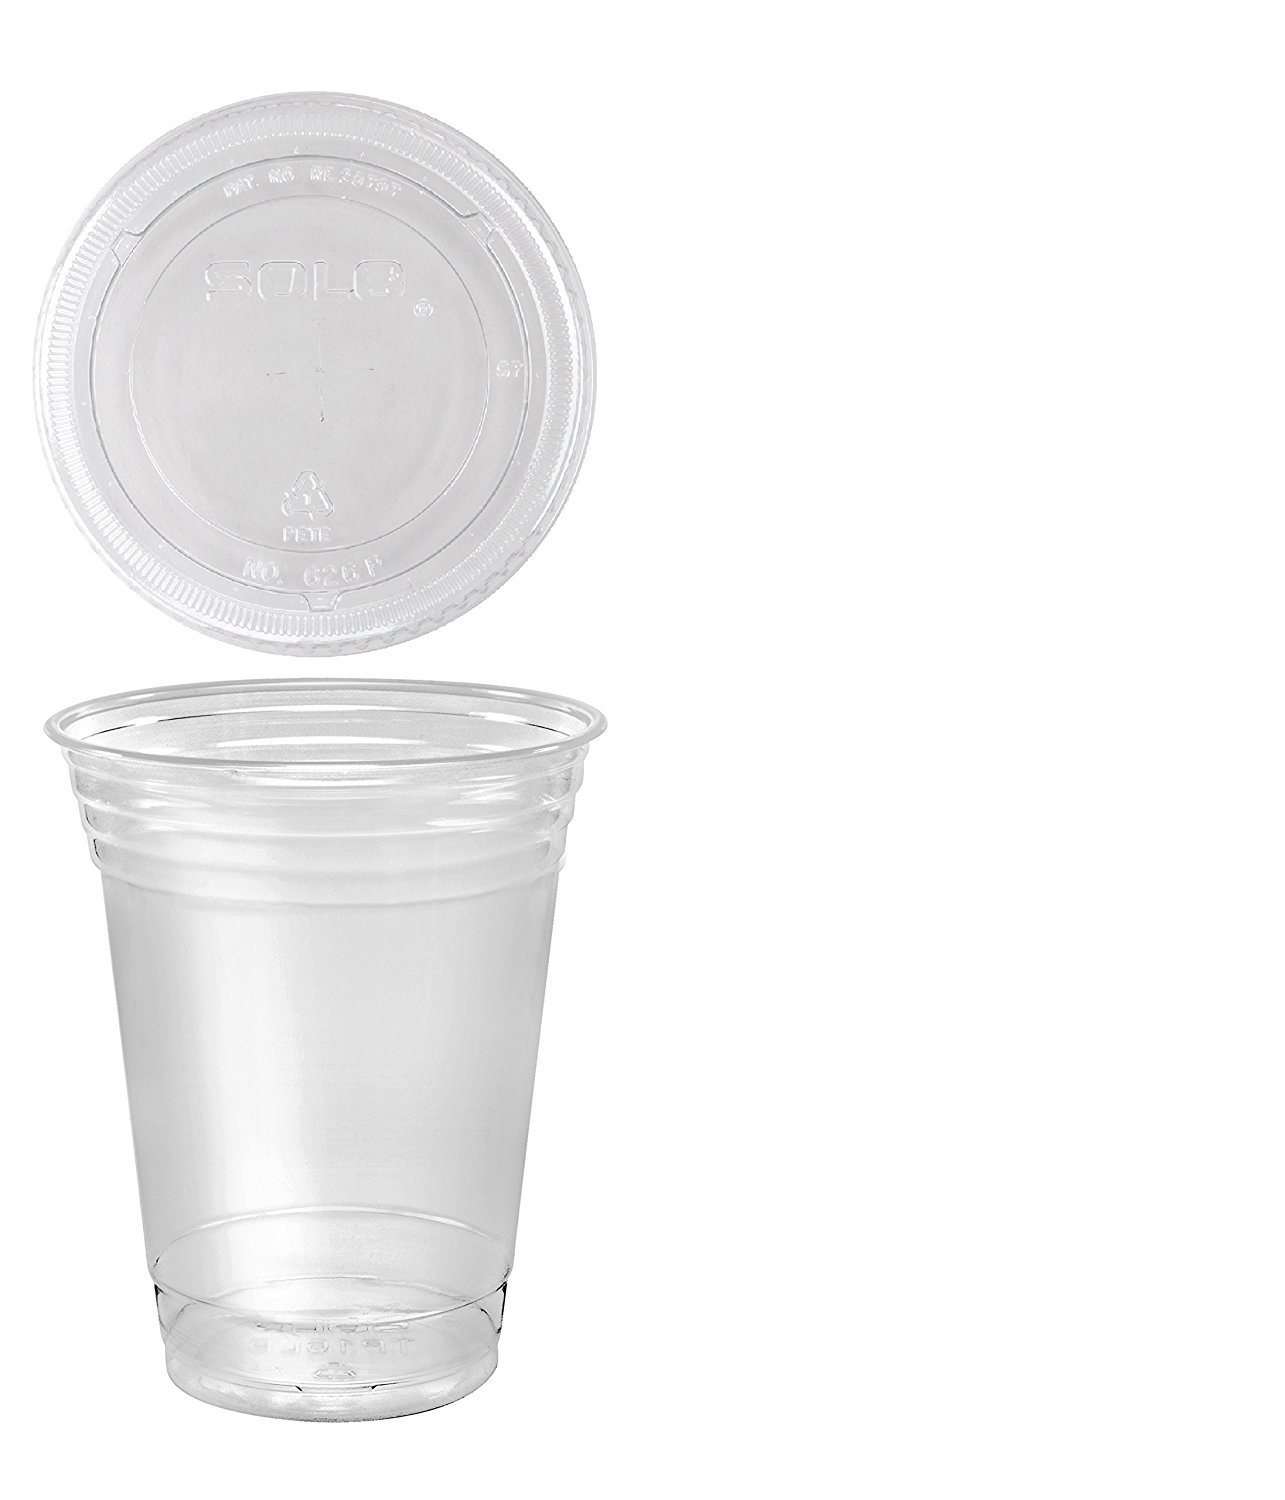 A World Of Deals 100 Sets 16 oz. Plastic CLEAR Cups with Flat Lids for Iced Coffee Bubble Boba Tea Smoothie by A World of Deals